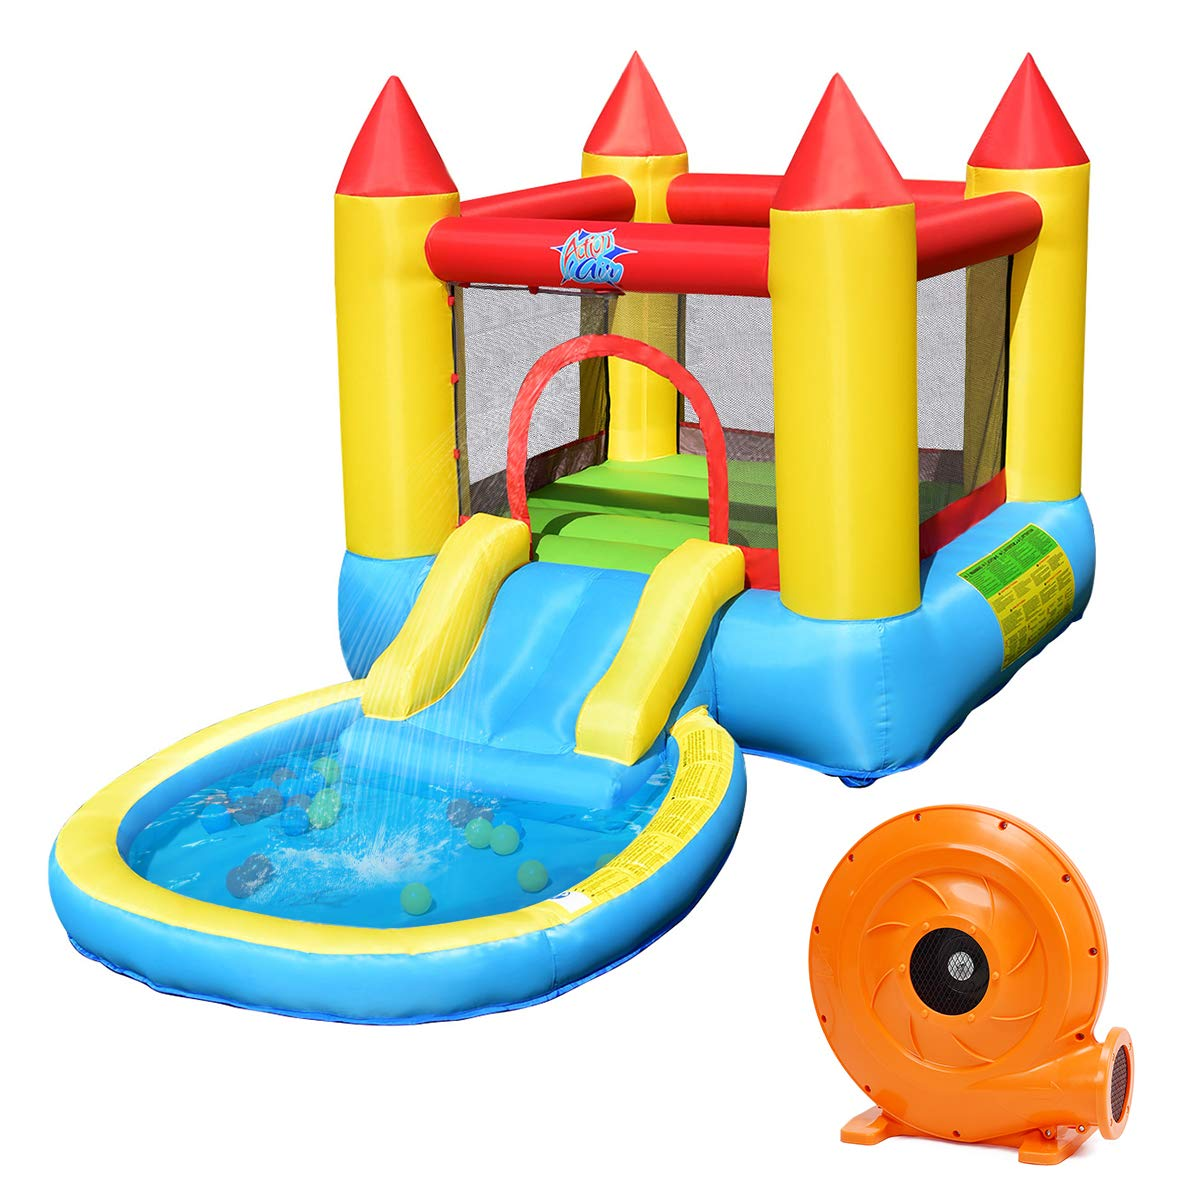 Costzon Inflatable Bounce House, Castle Jumping Bouncer with Water Slide, Splashing Water Pool, Including Oxford Carry Bag, Repairing Kit, Stakes, Water Hose, Ocean Balls, 580W Air Blower by Costzon